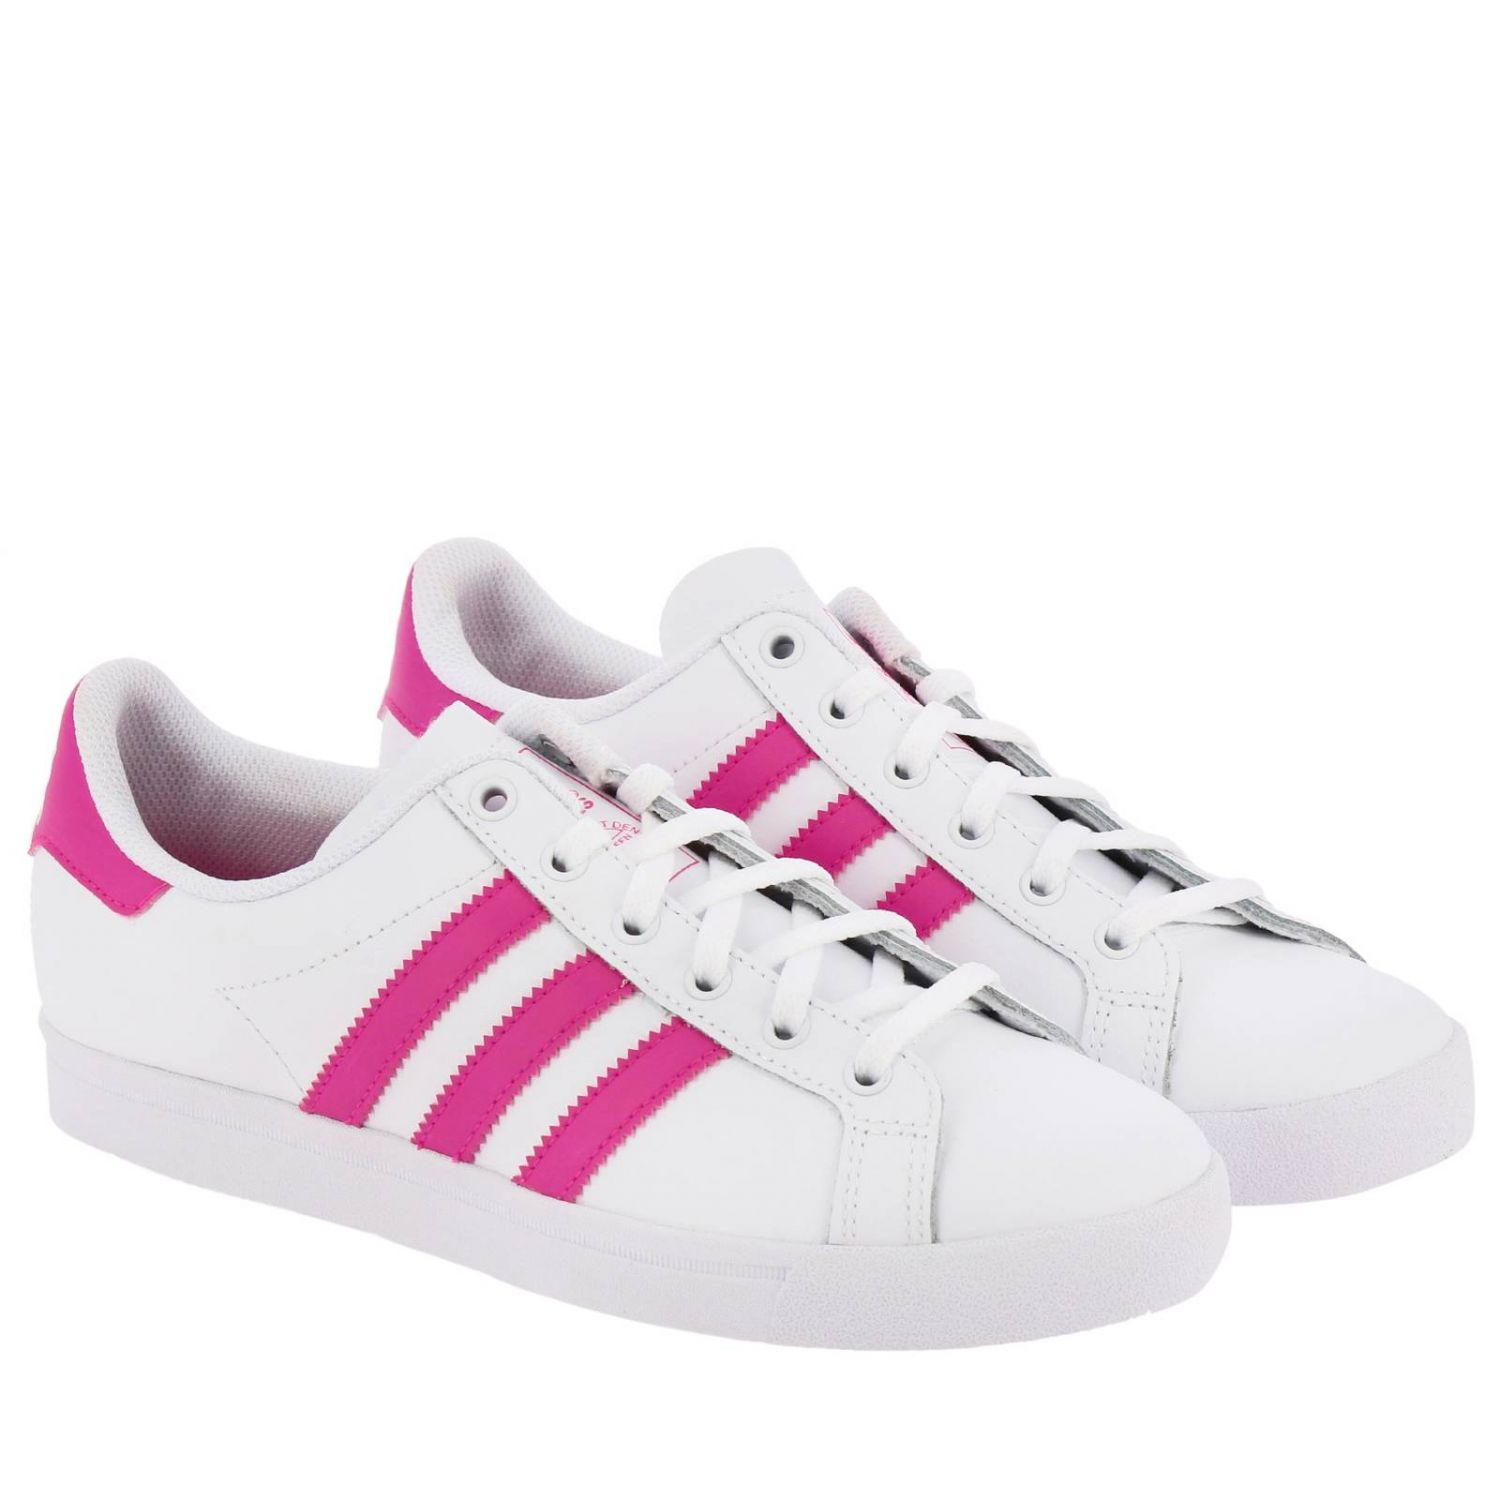 Scarpe Adidas Originals: Sneakers Coast star J Adidas Originals in pelle con bande a contrasto bianco 2